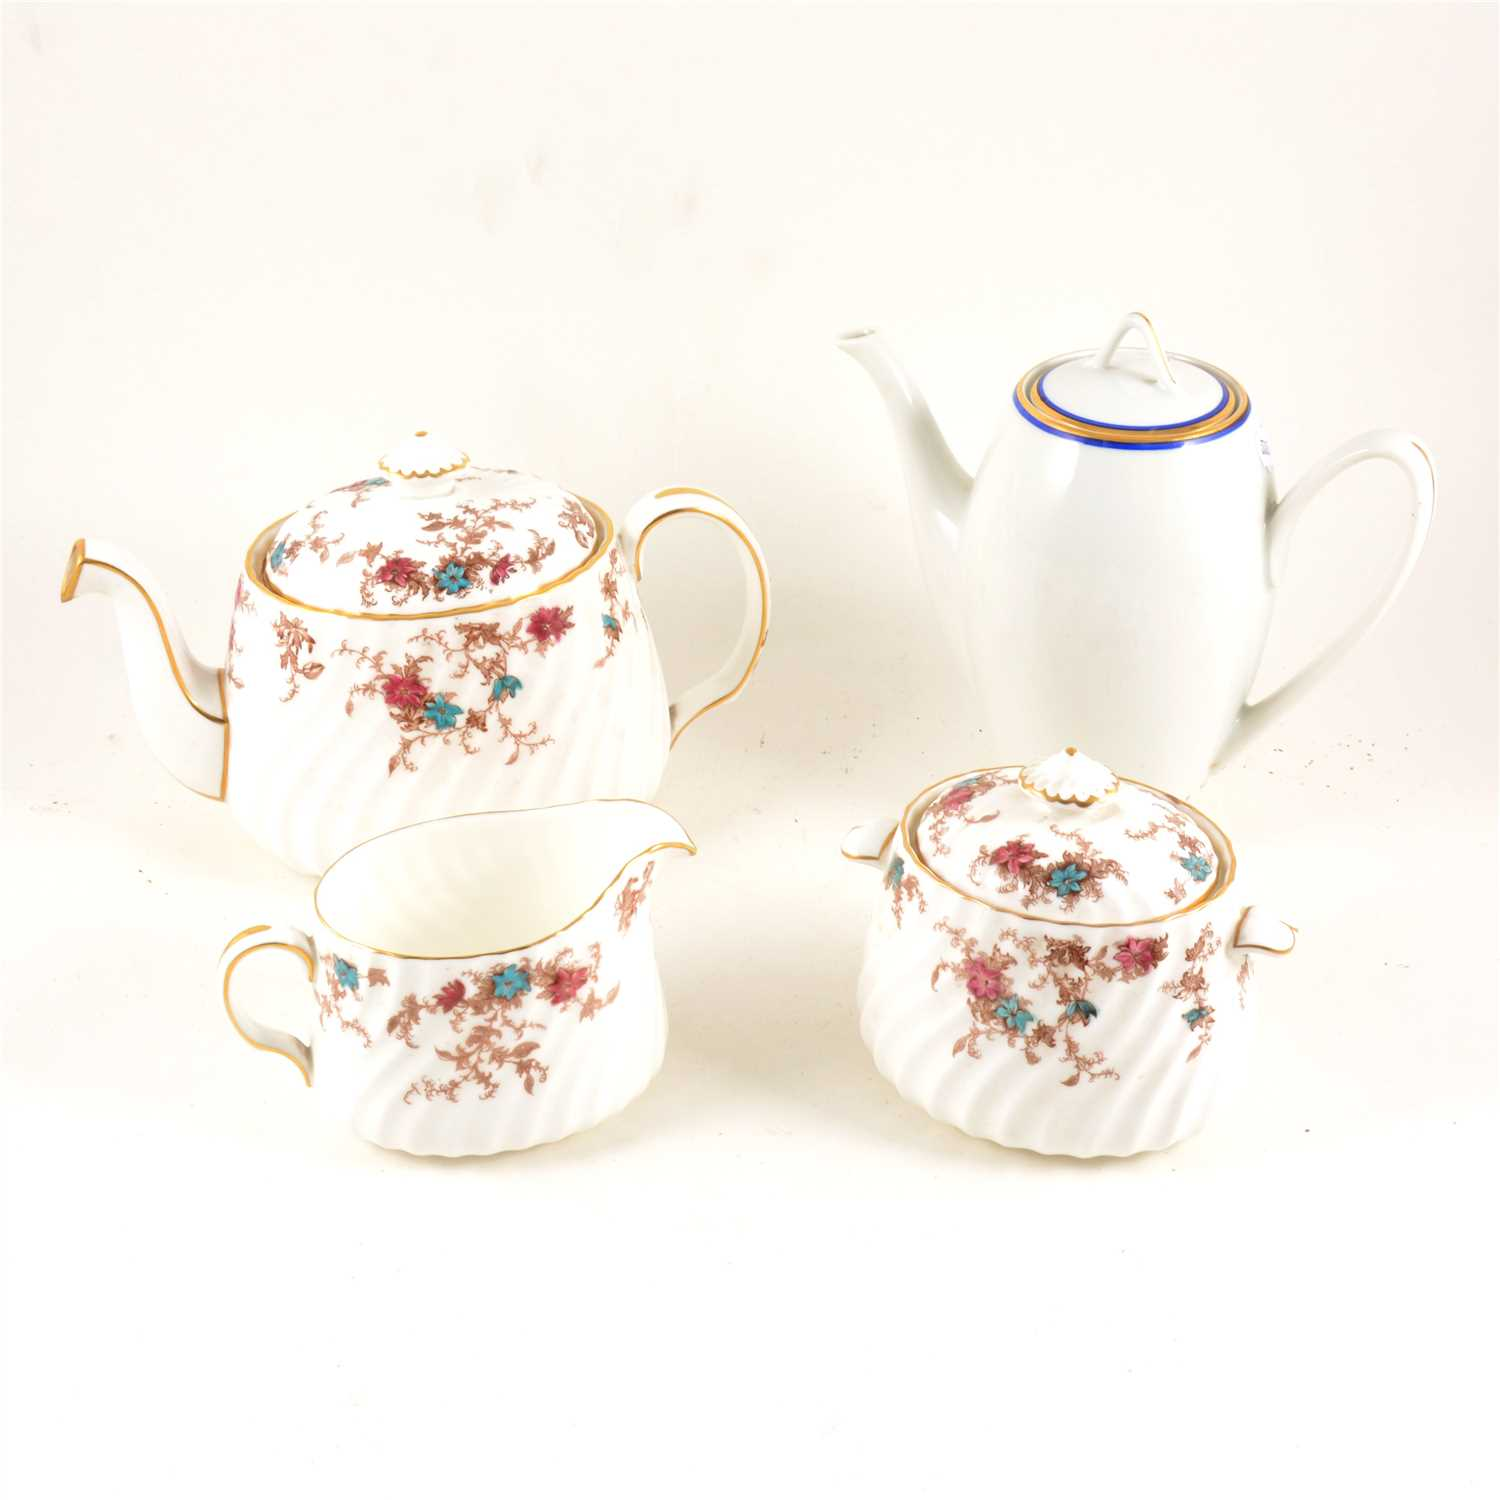 Lot 60 - Minton bone china part teaset, Ancestral pattern, and a Carlsbad coffee set.